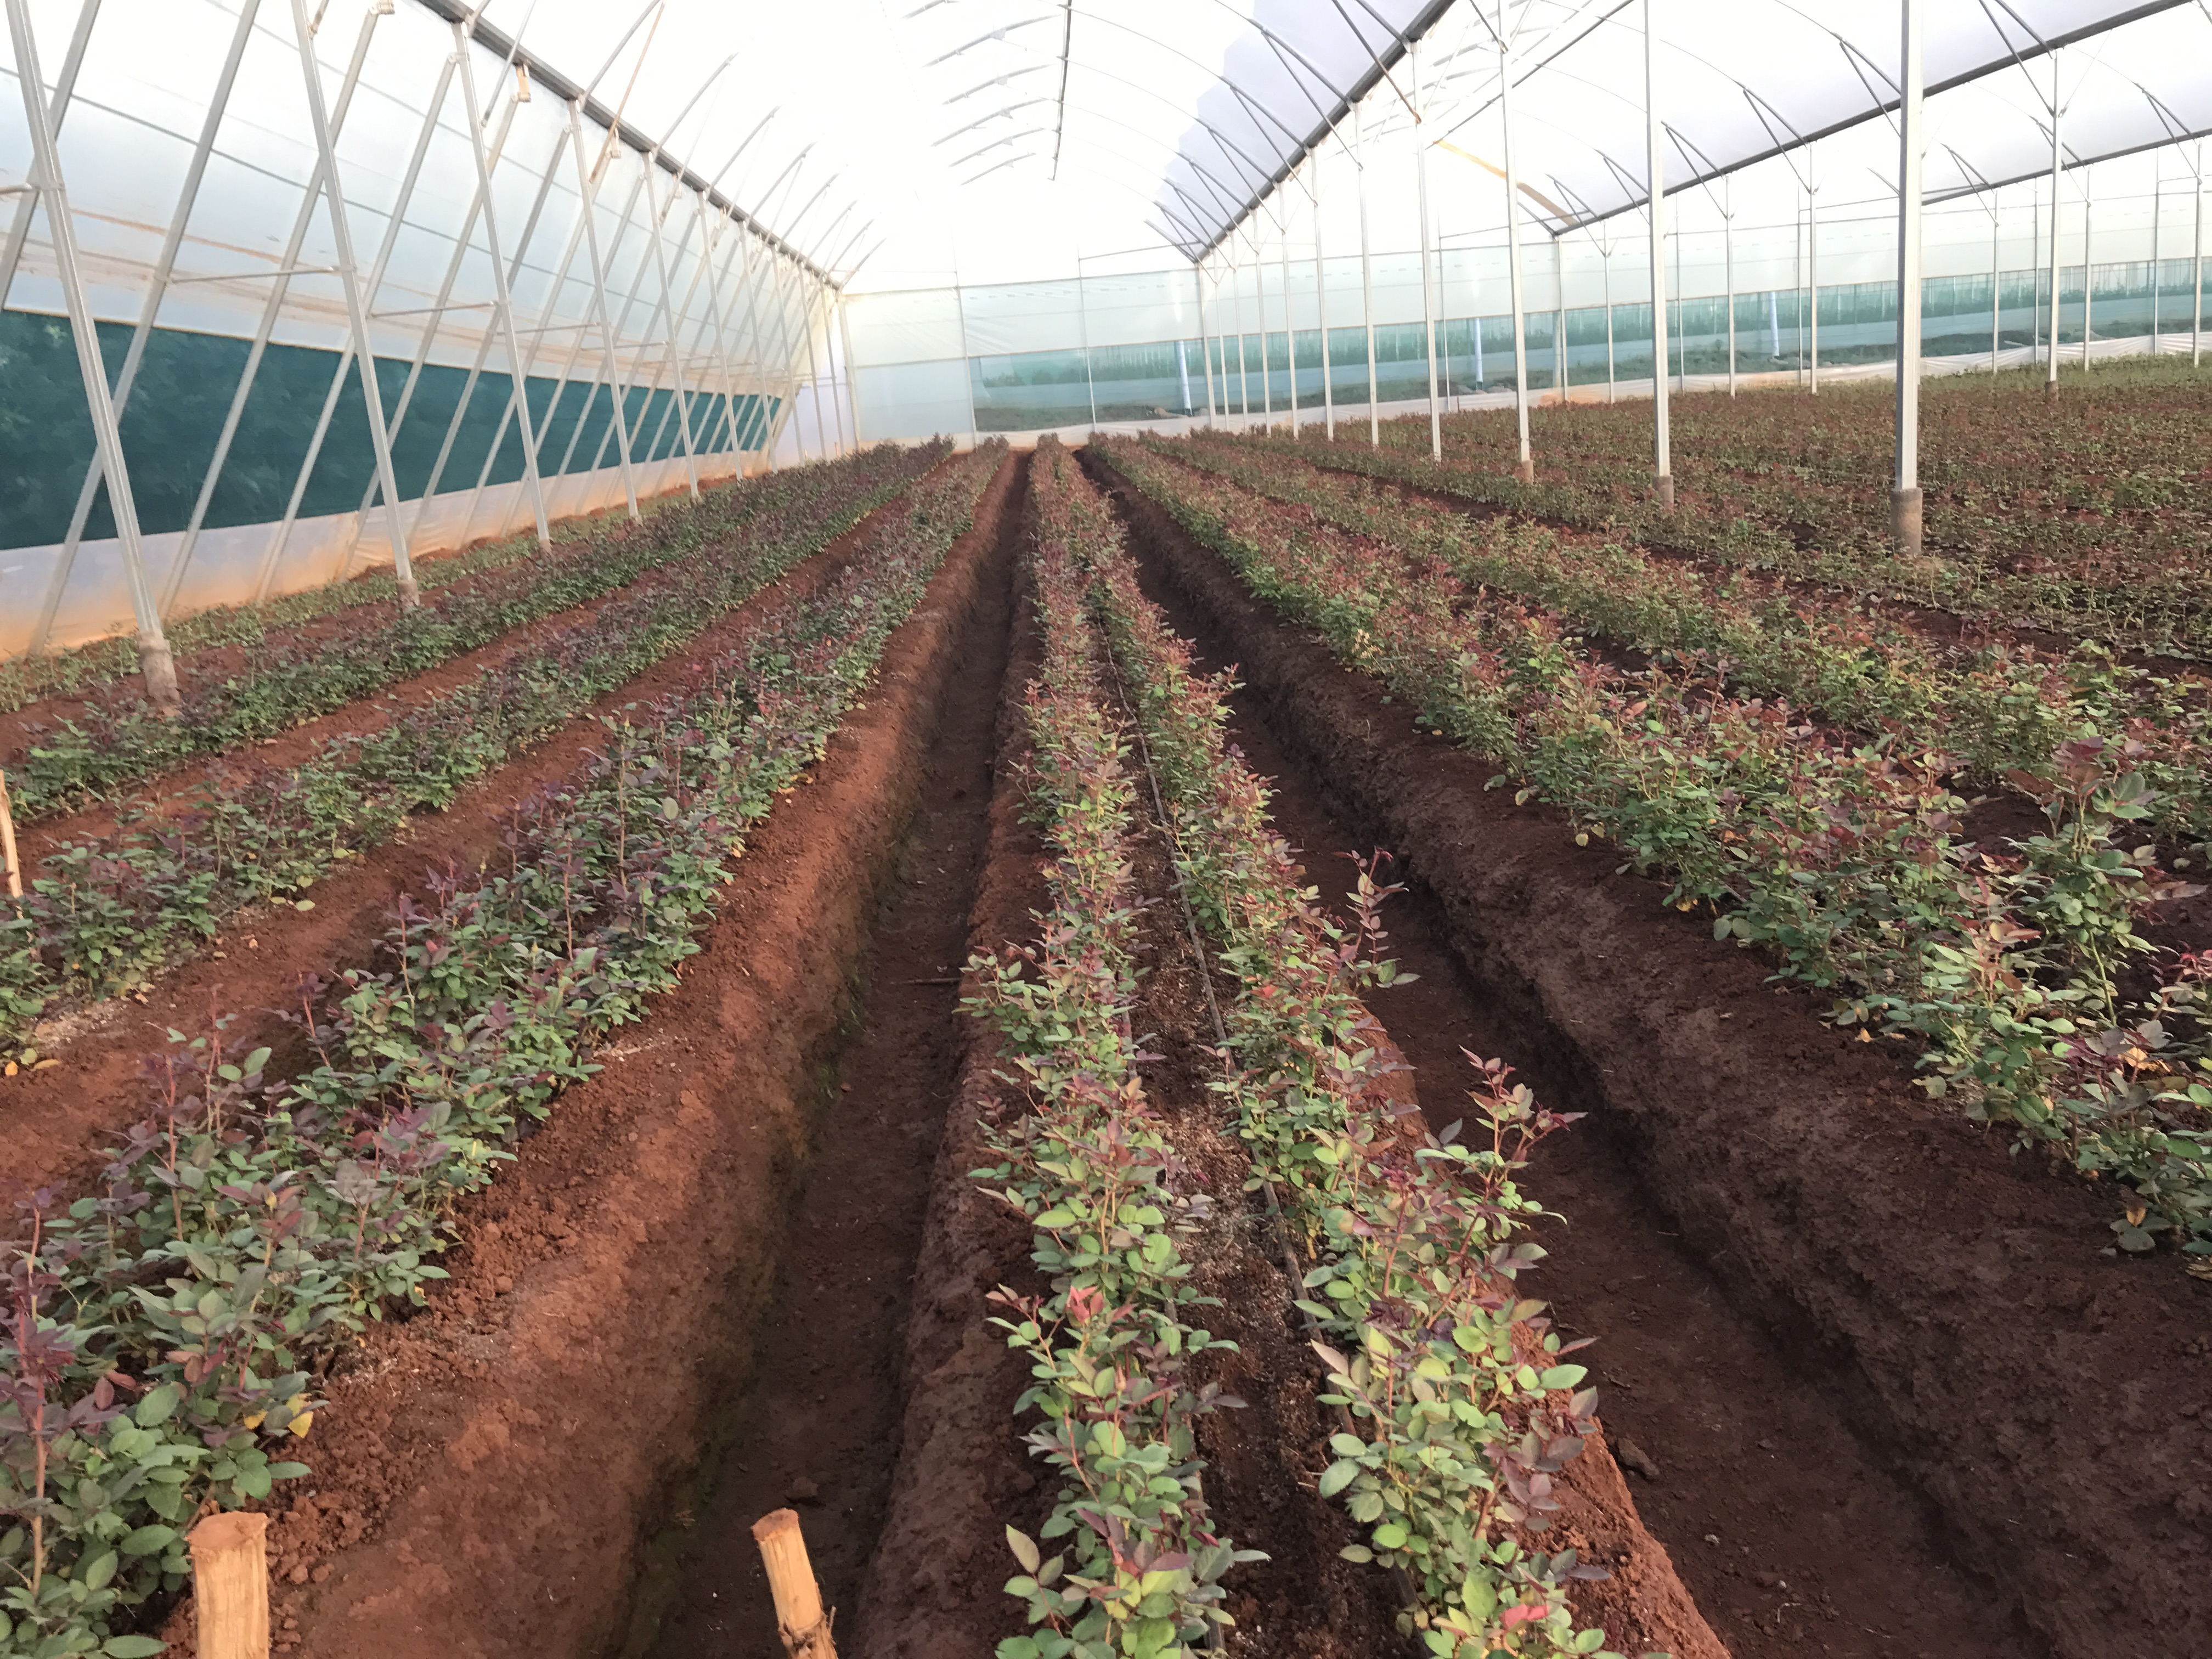 Ethiopia: Environmentally aware grower recruits help from